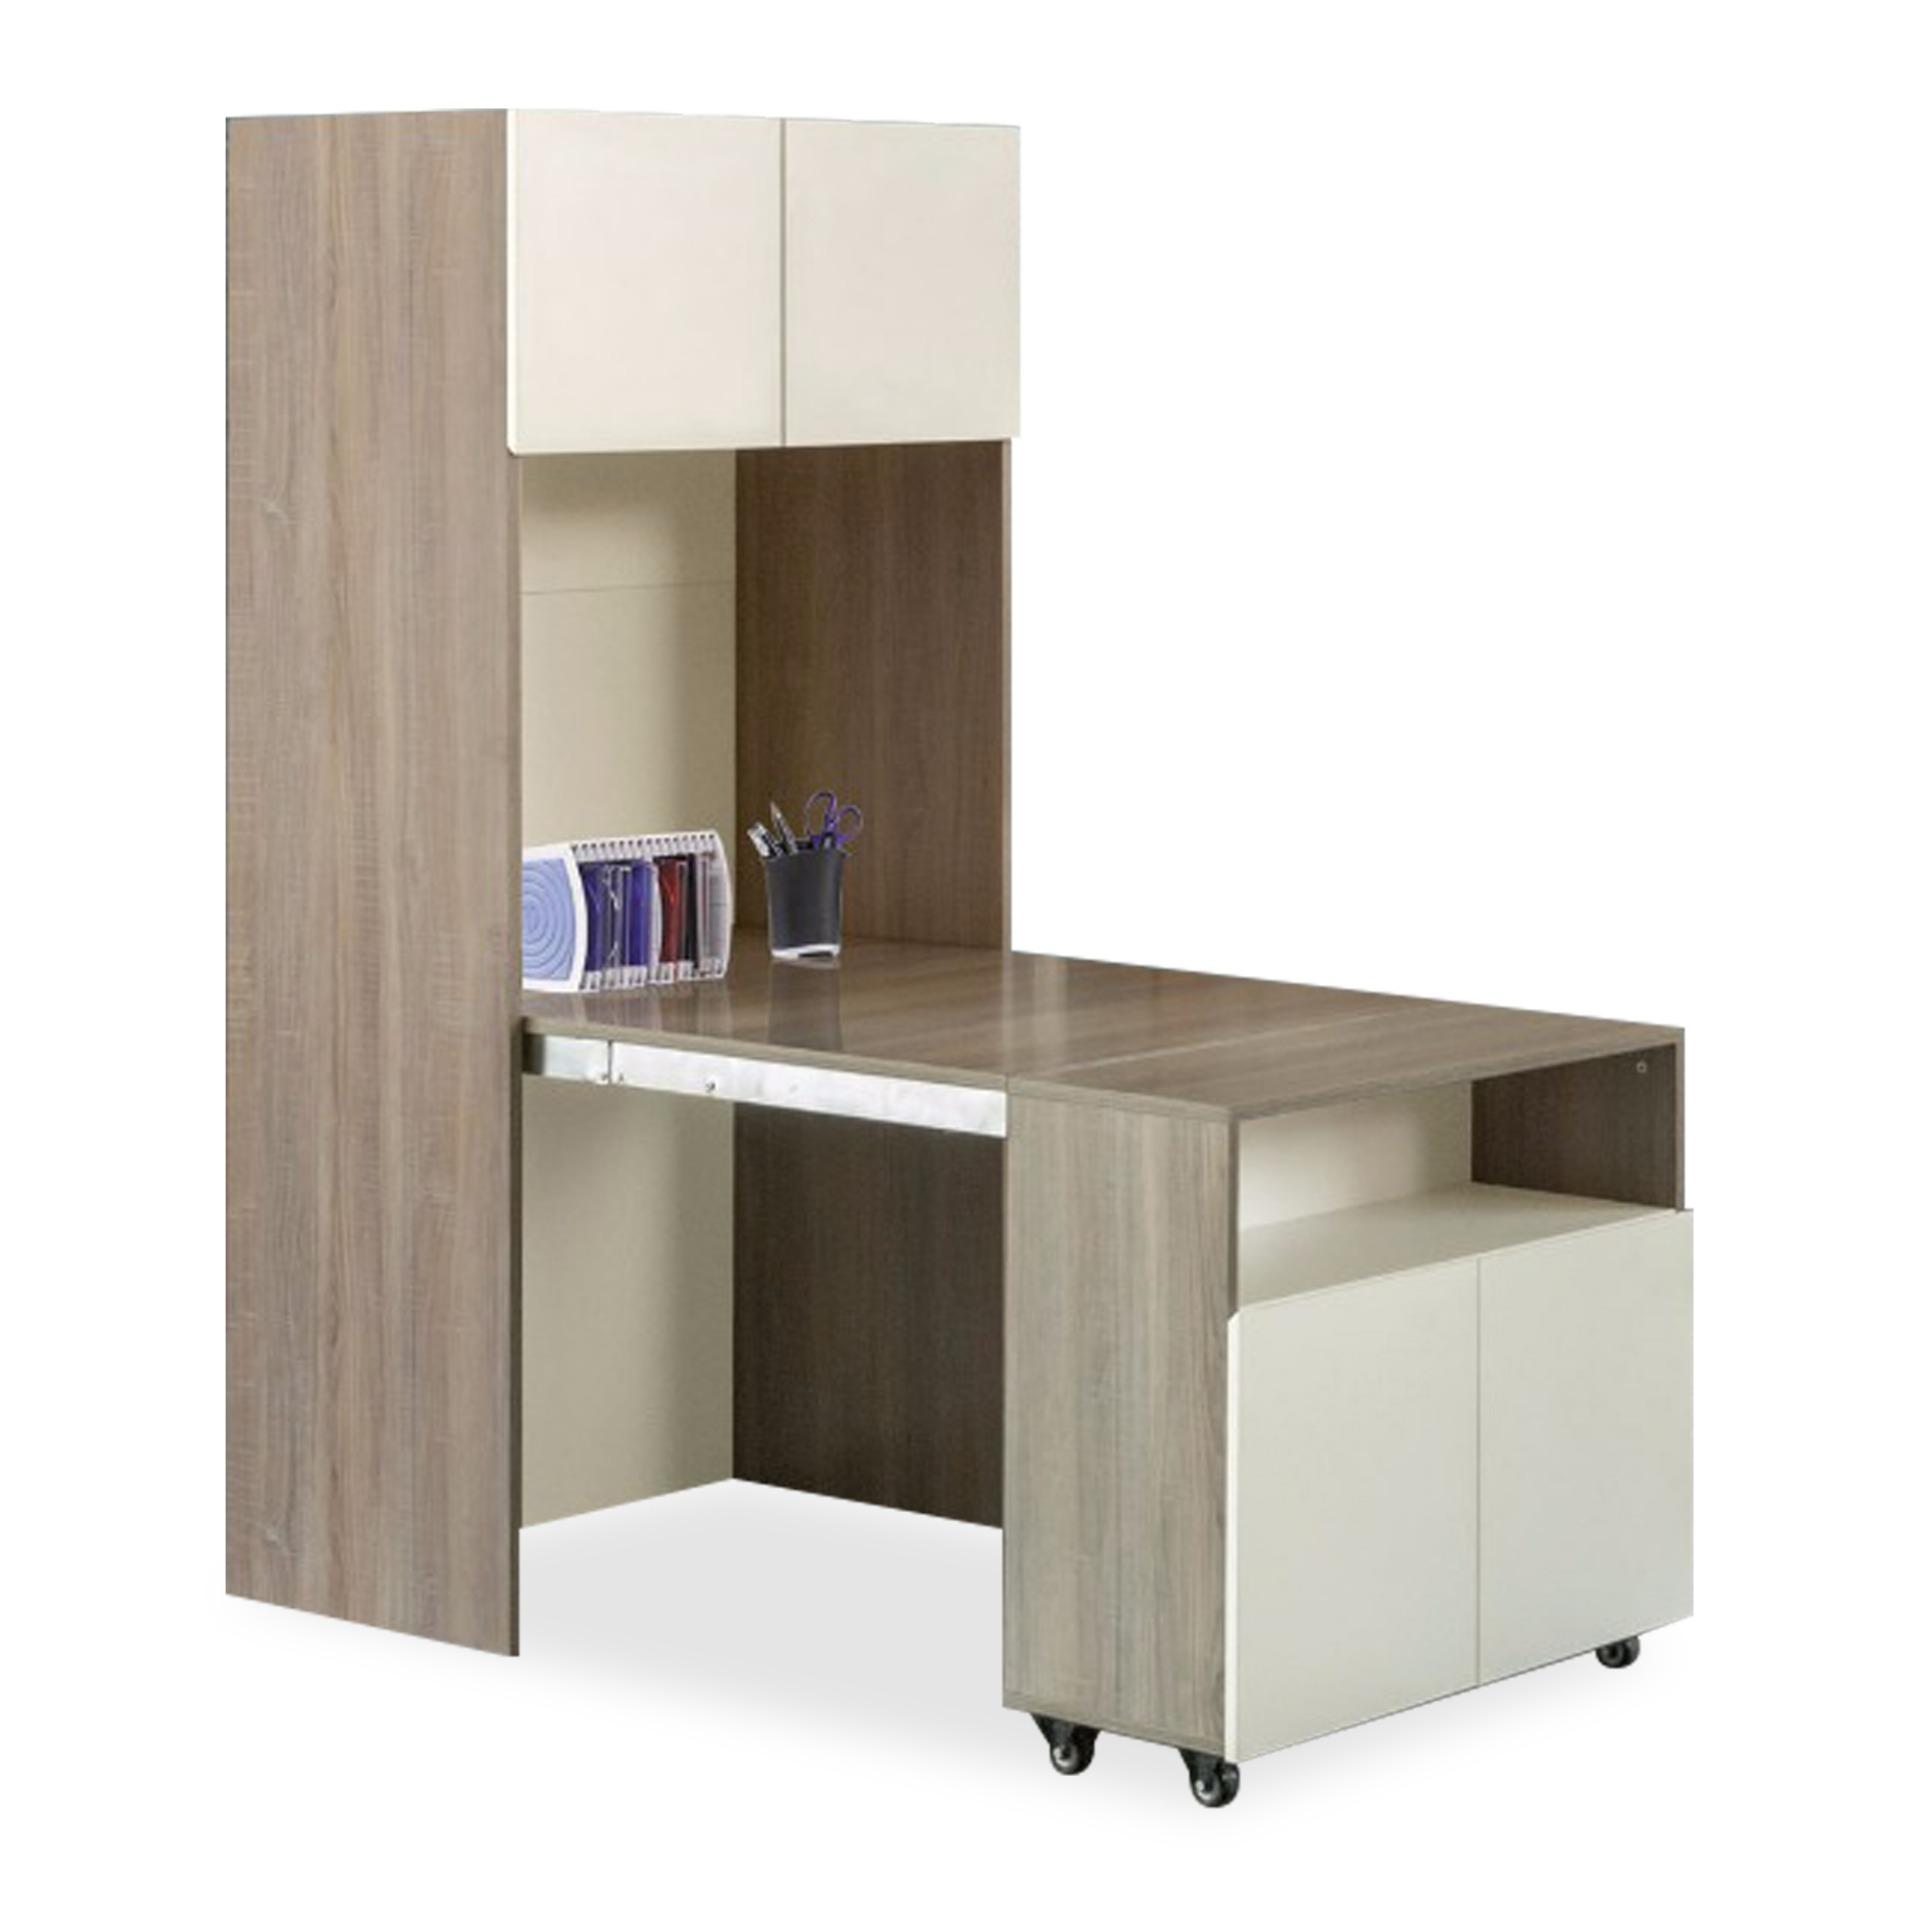 Ancil Extension Study Table With Book Cabinet (FREE DELIVERY)(FREE ASSEMBLY)